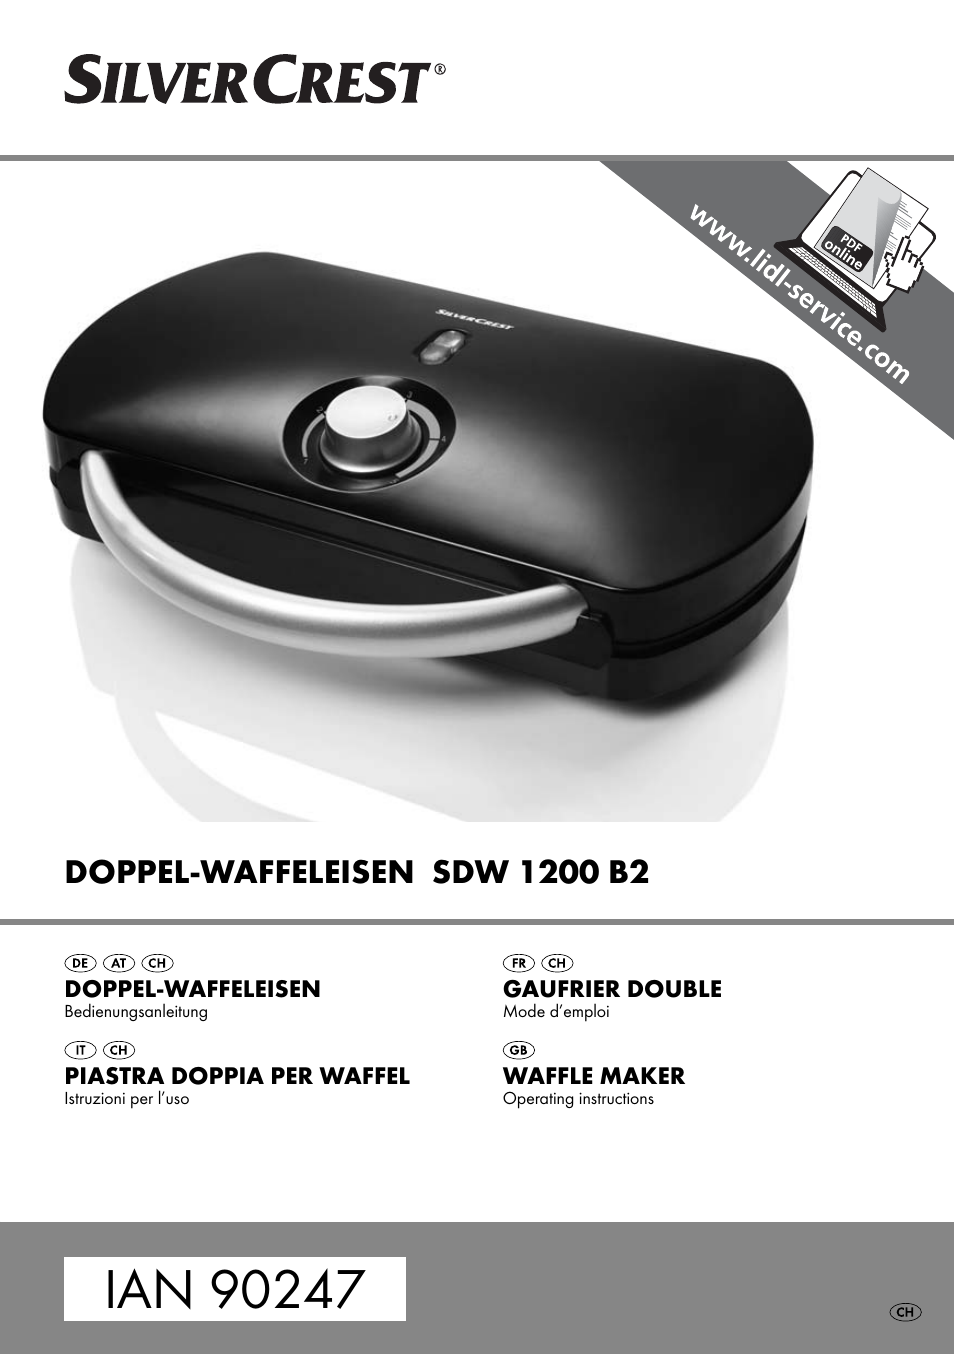 Silvercrest Sdw 1200 B2 User Manual 44 Pages